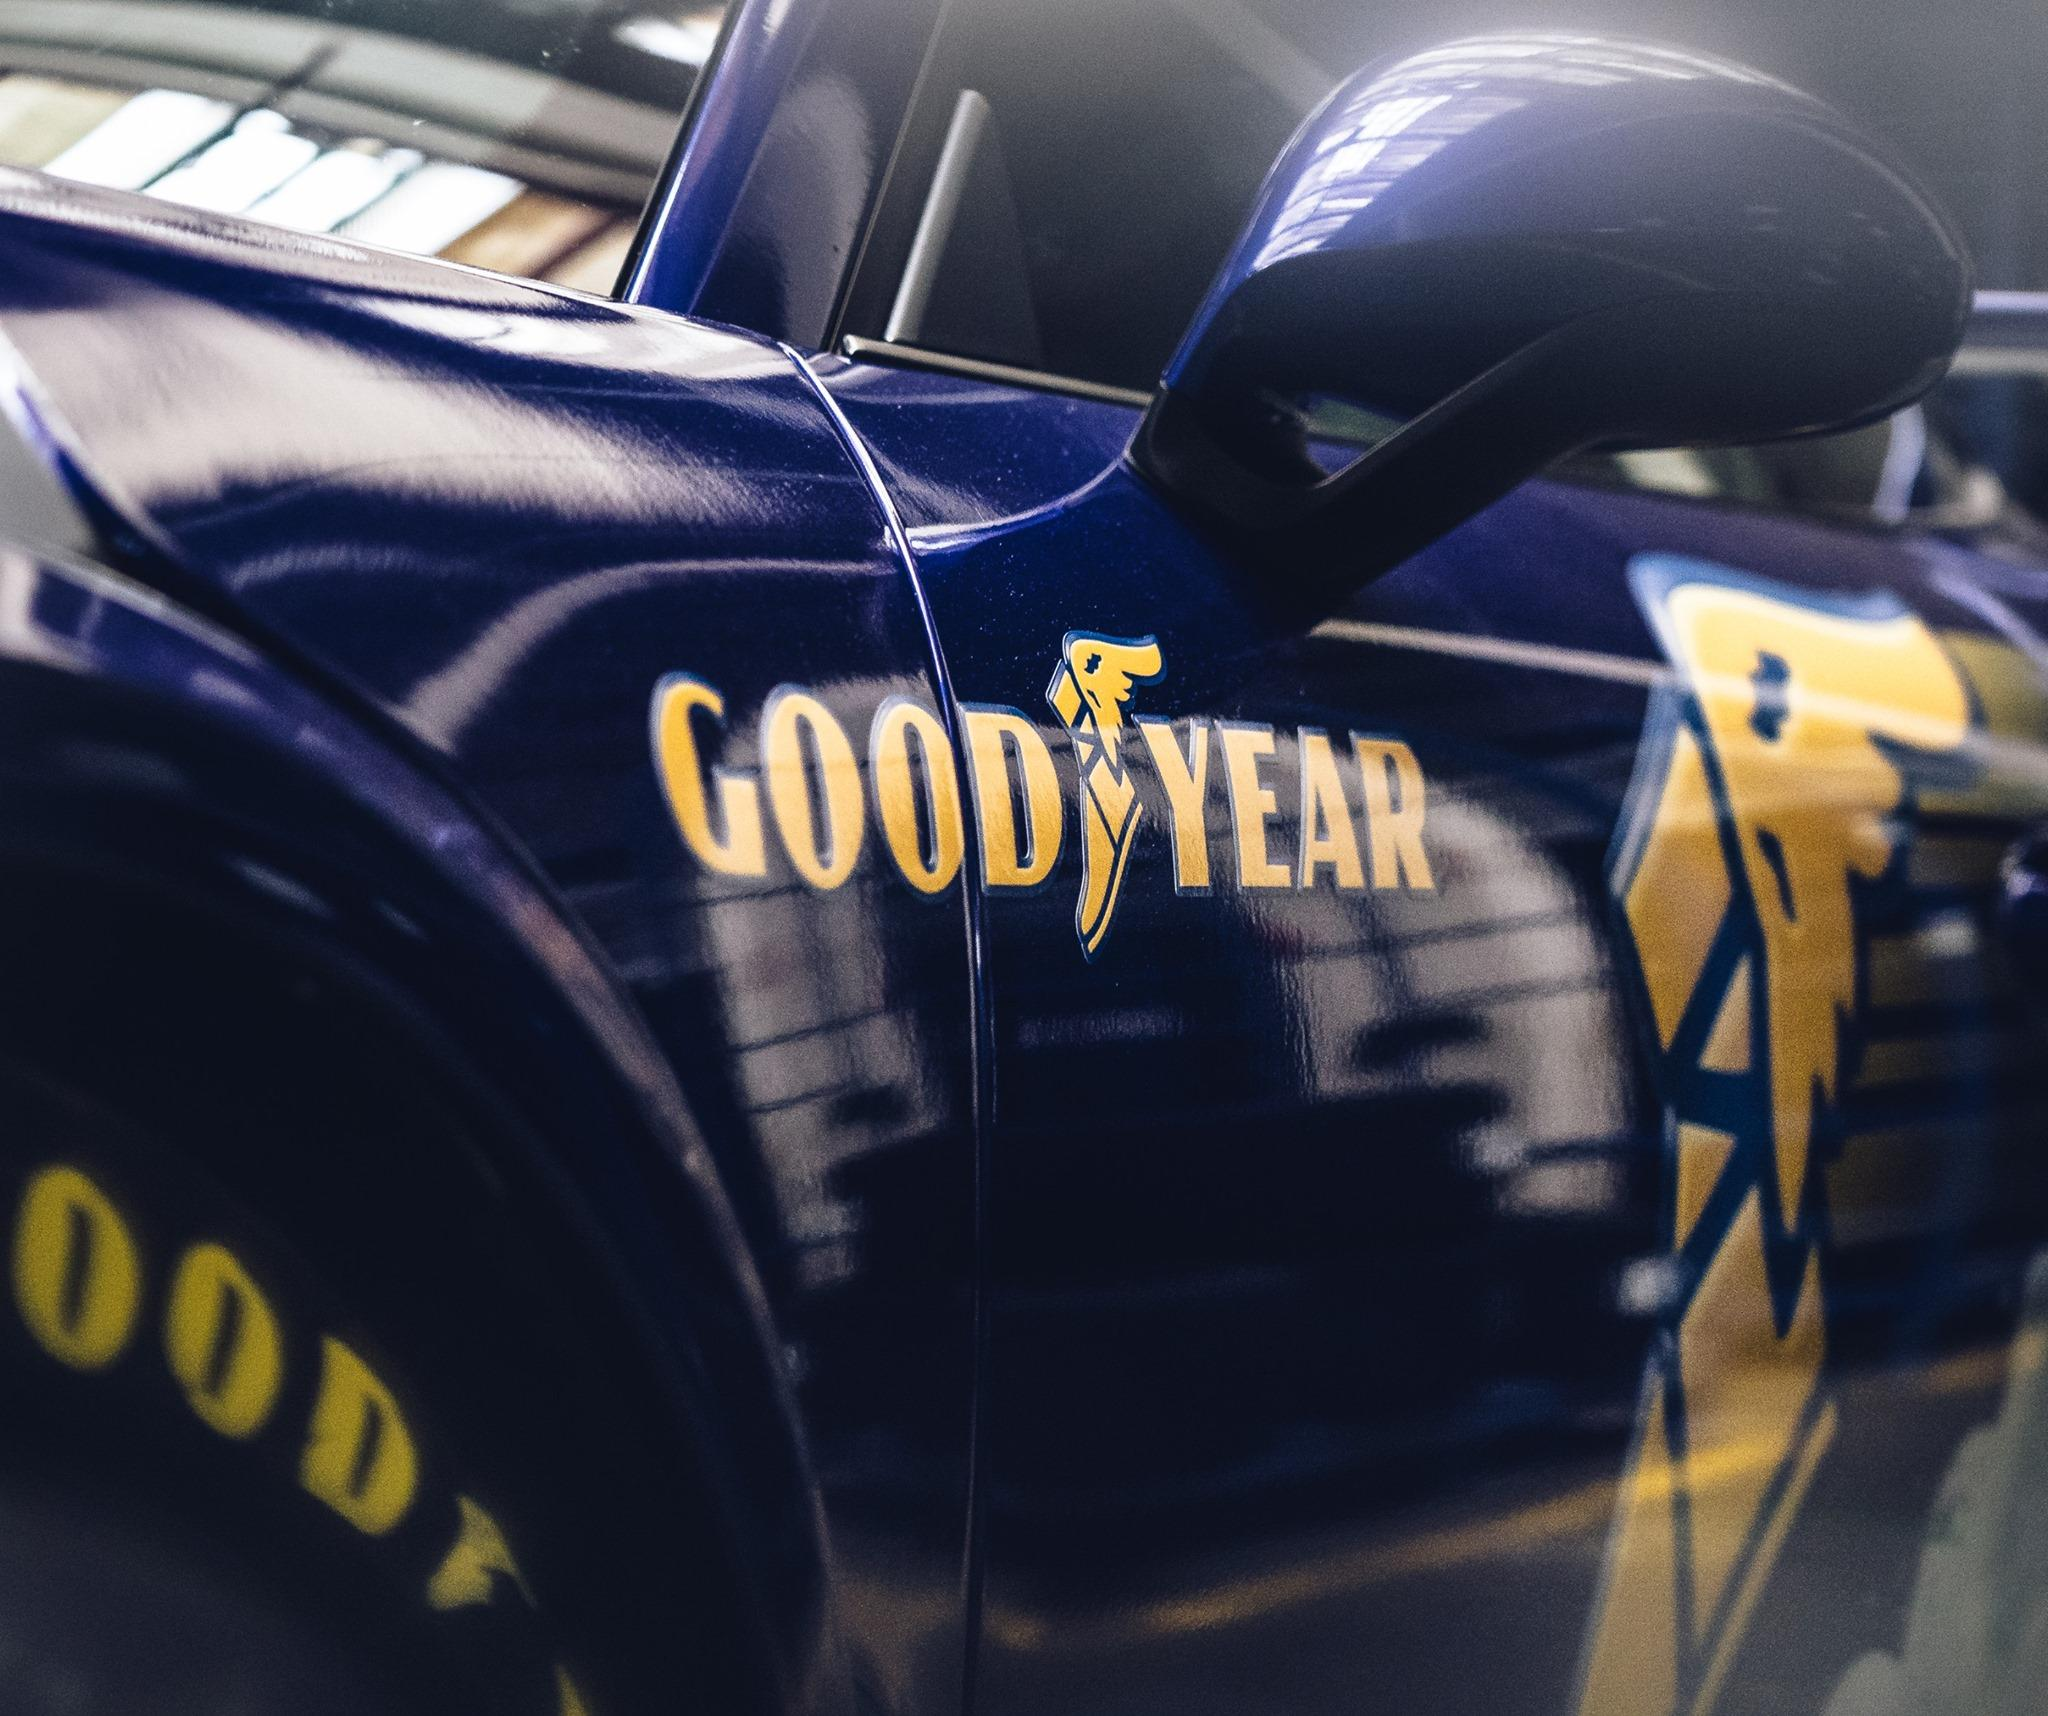 Car with a Goodyear logo and tires